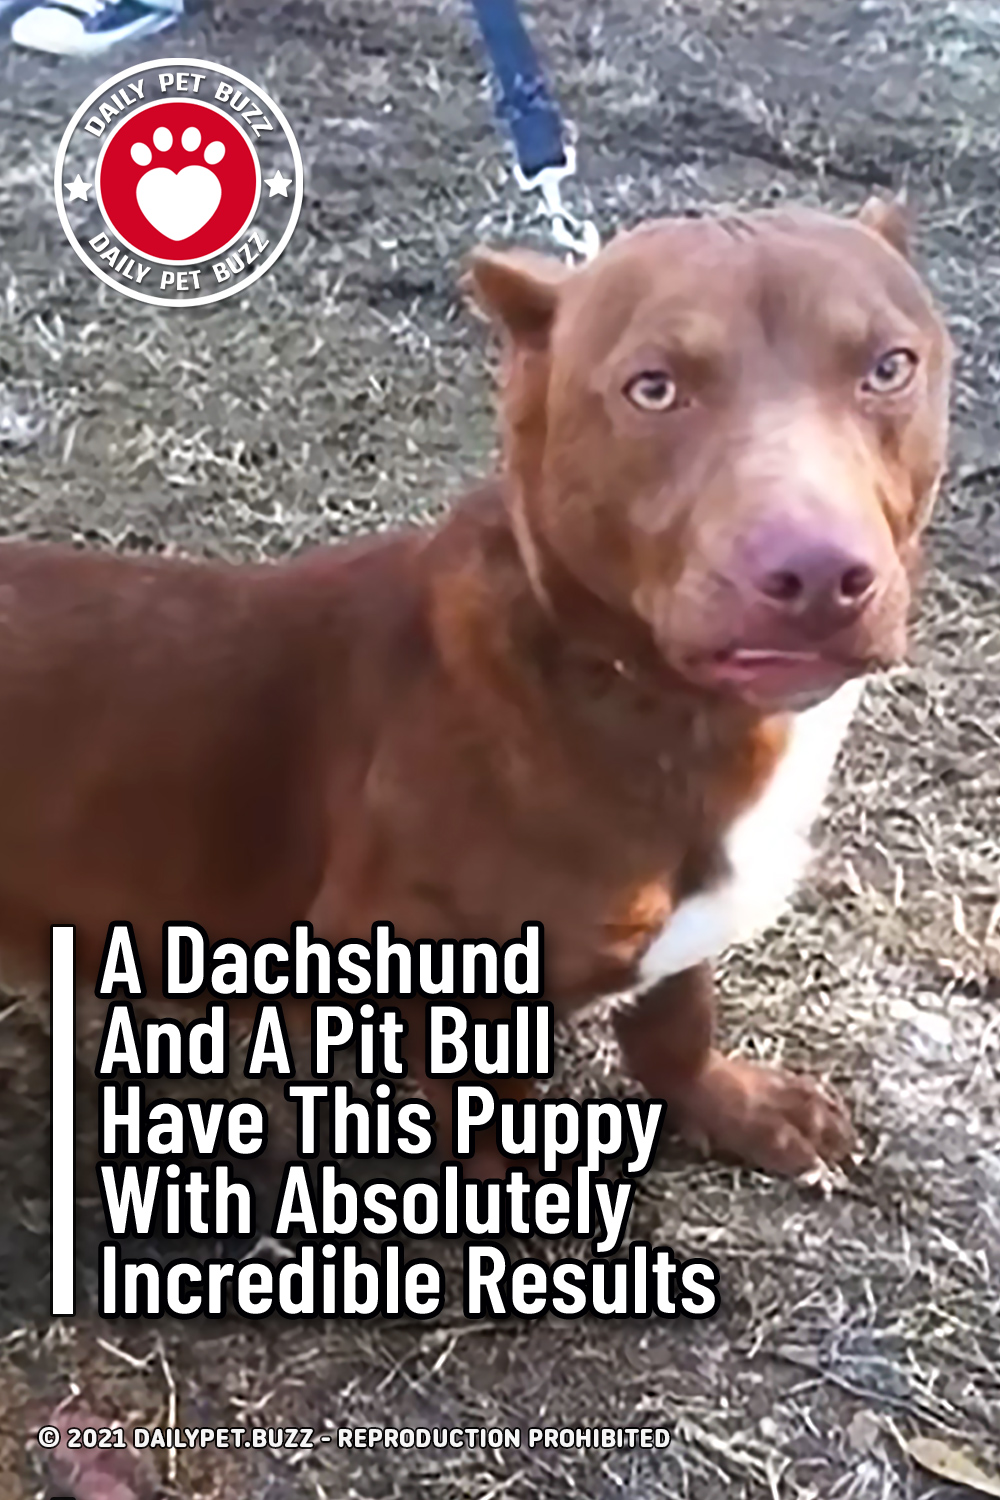 A Dachshund And A Pit Bull Have This Puppy With Absolutely Incredible Results